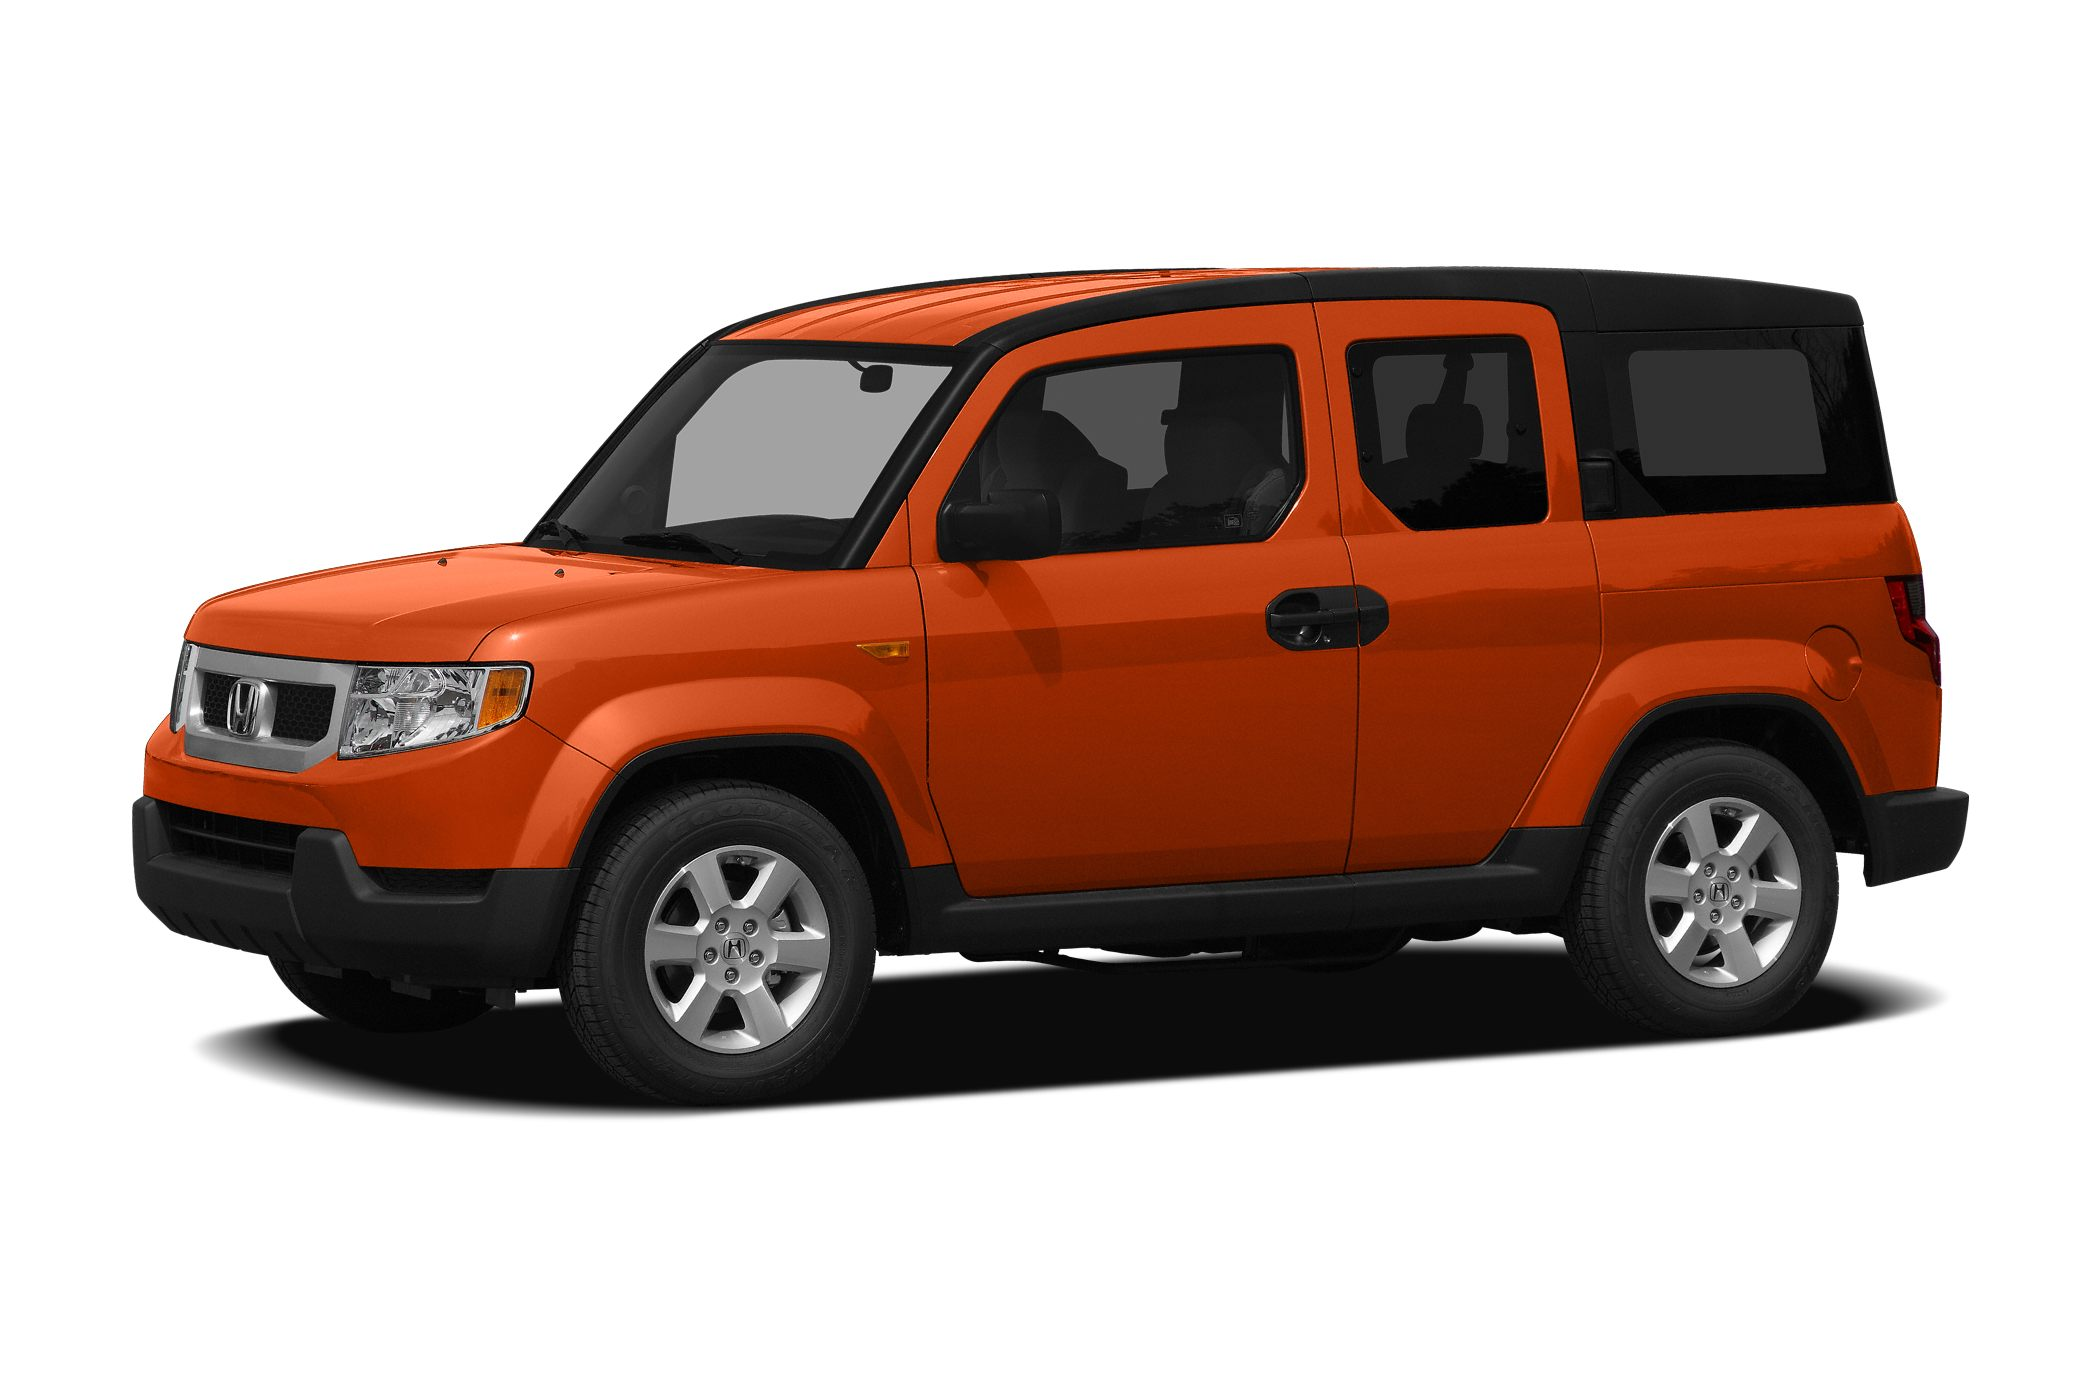 2011 Honda Element EX SUV for sale in Long Beach for $19,000 with 72,515 miles.